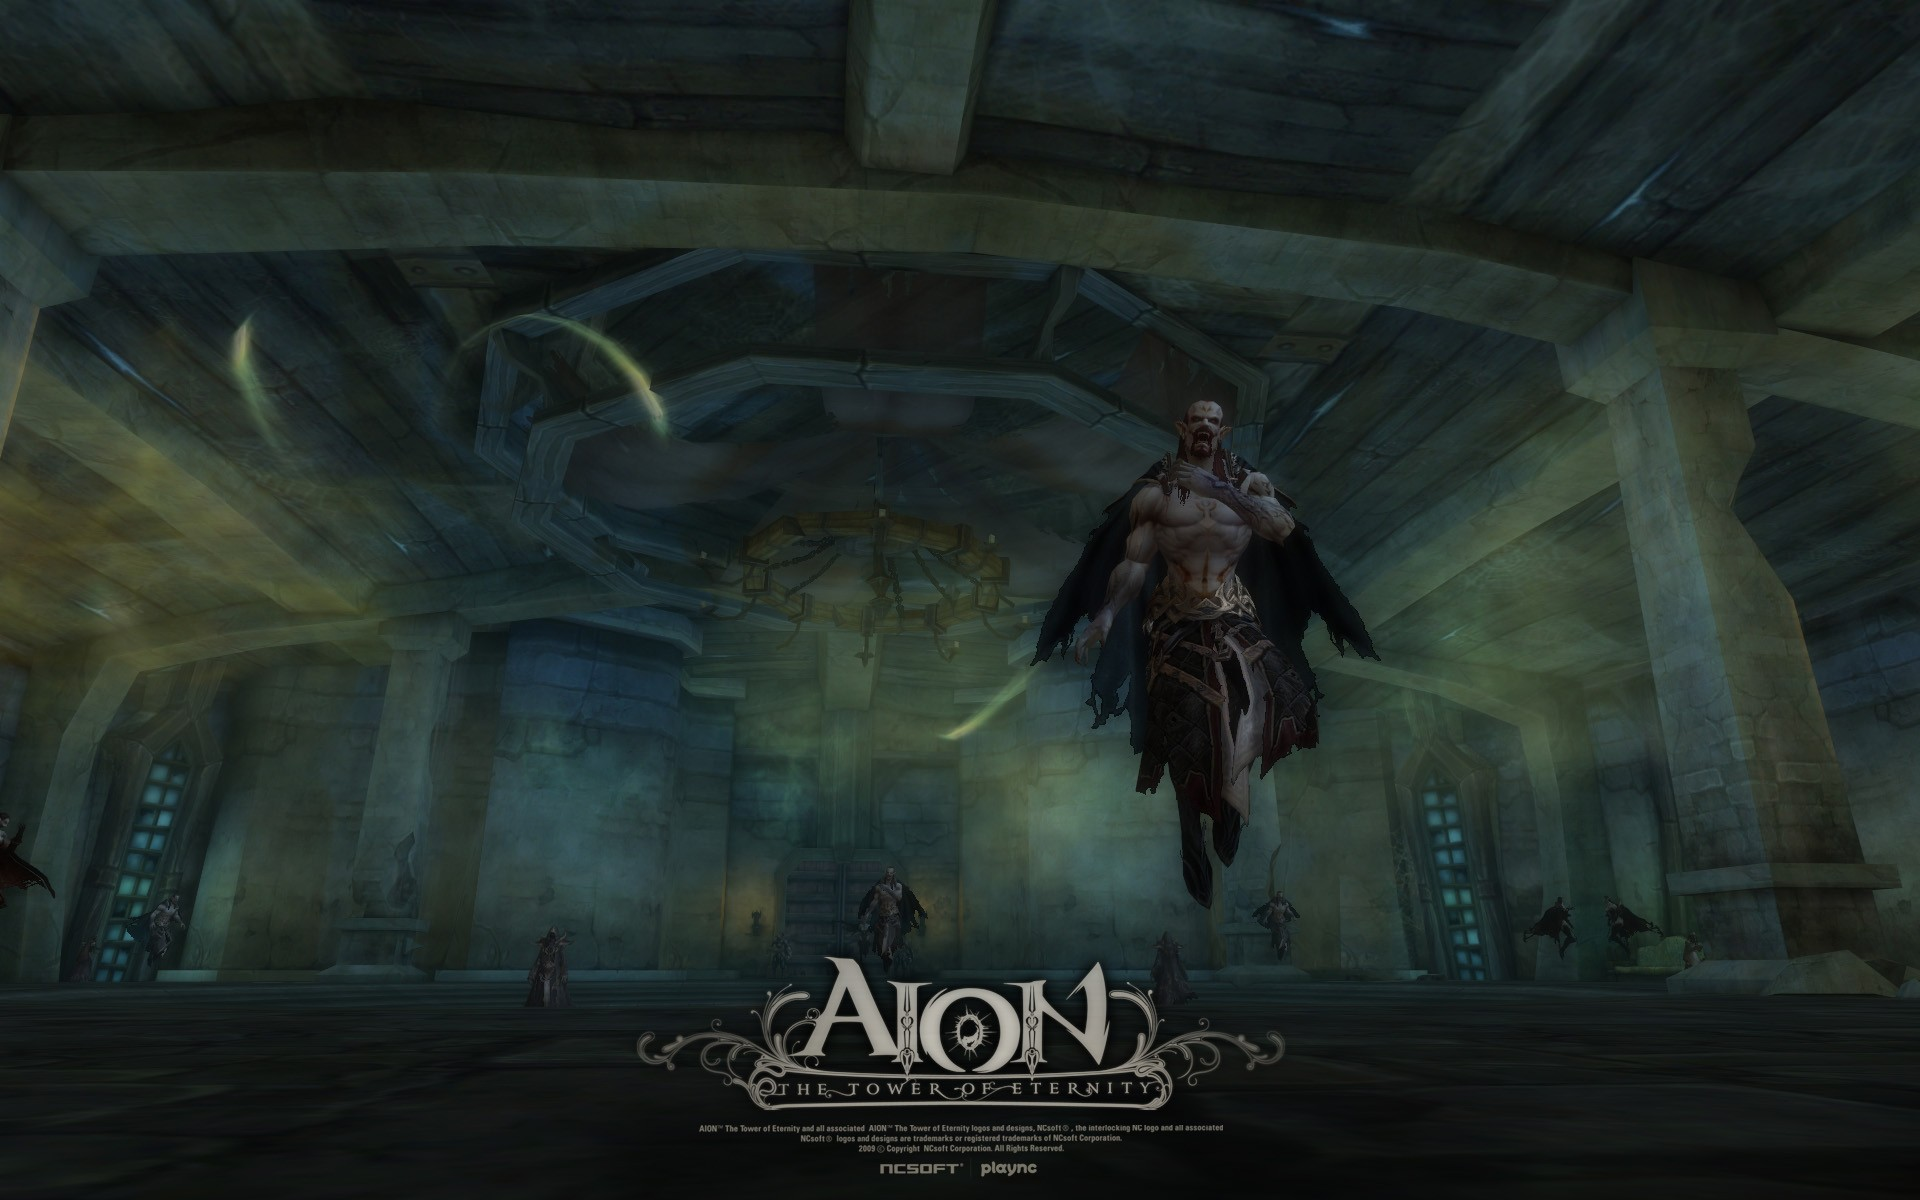 Aion: Tower of Eternity - Ambienti